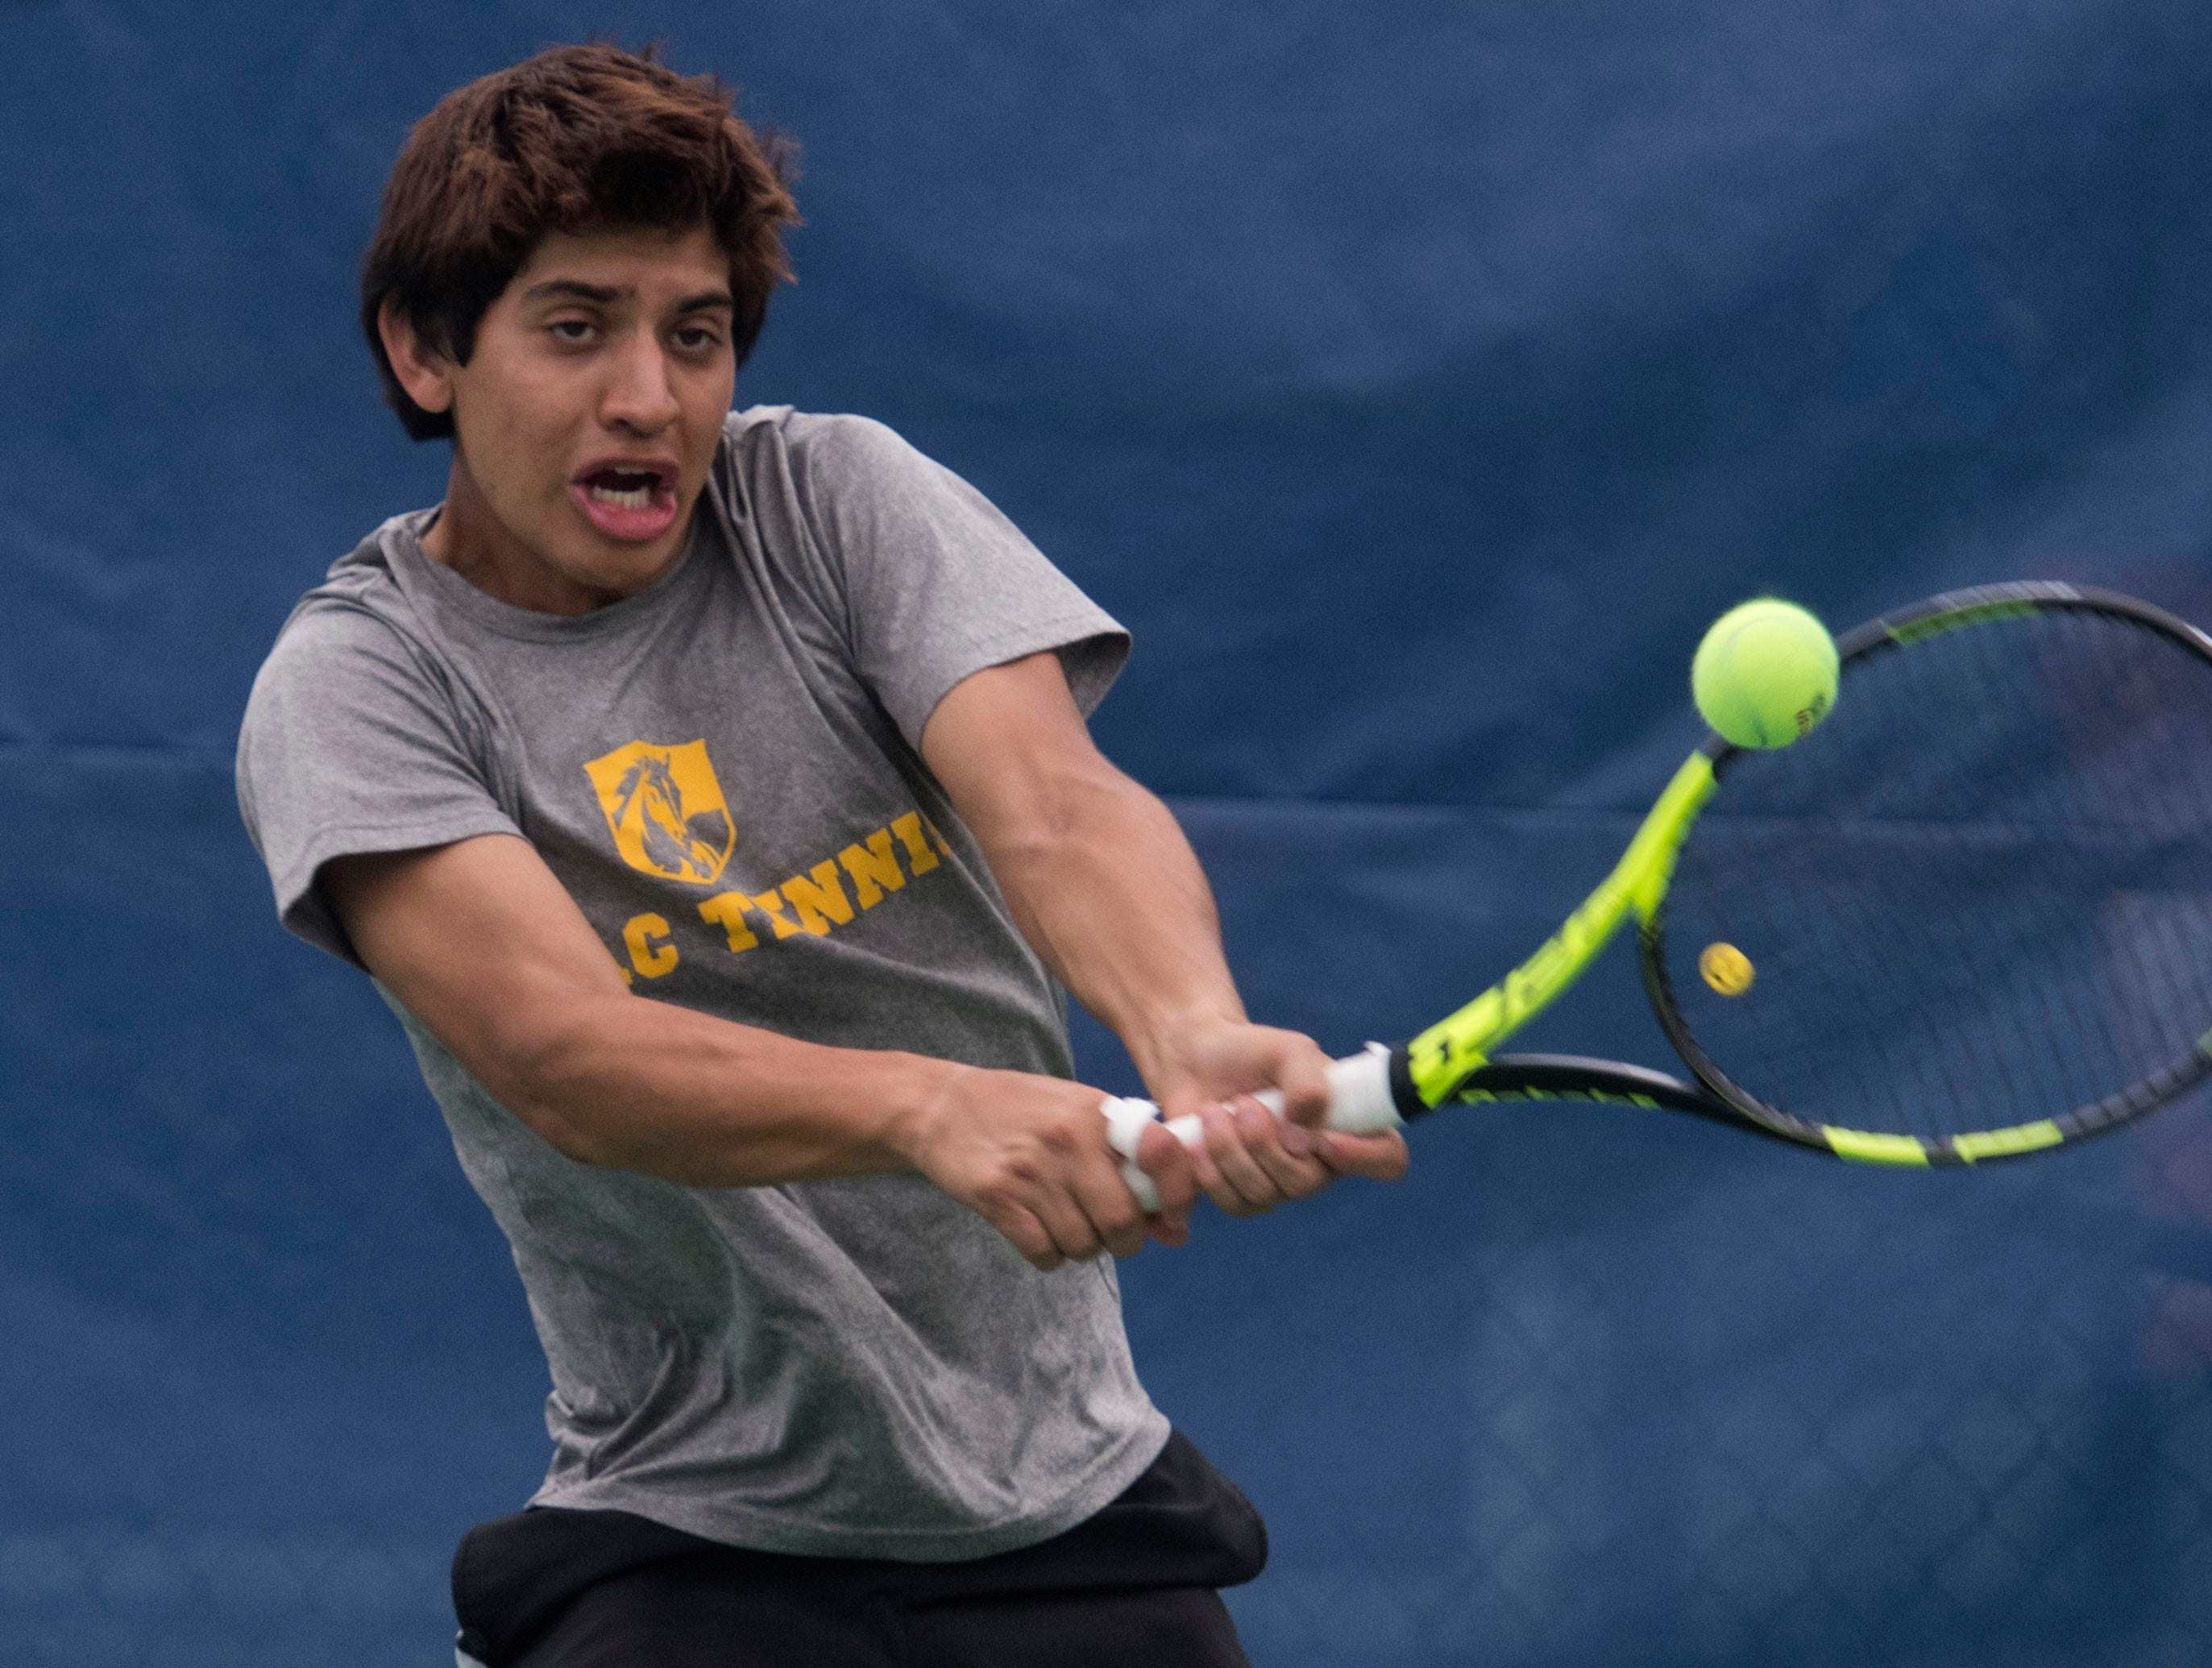 Juan Pino, from Abraham Baldwin Agricultural College, returns the serve from the Seward County Community College team during doubles play in the Western Gate Tennis Invitational tournament at UWF on Monday, March 11, 2019. Seward won the match 8-6.